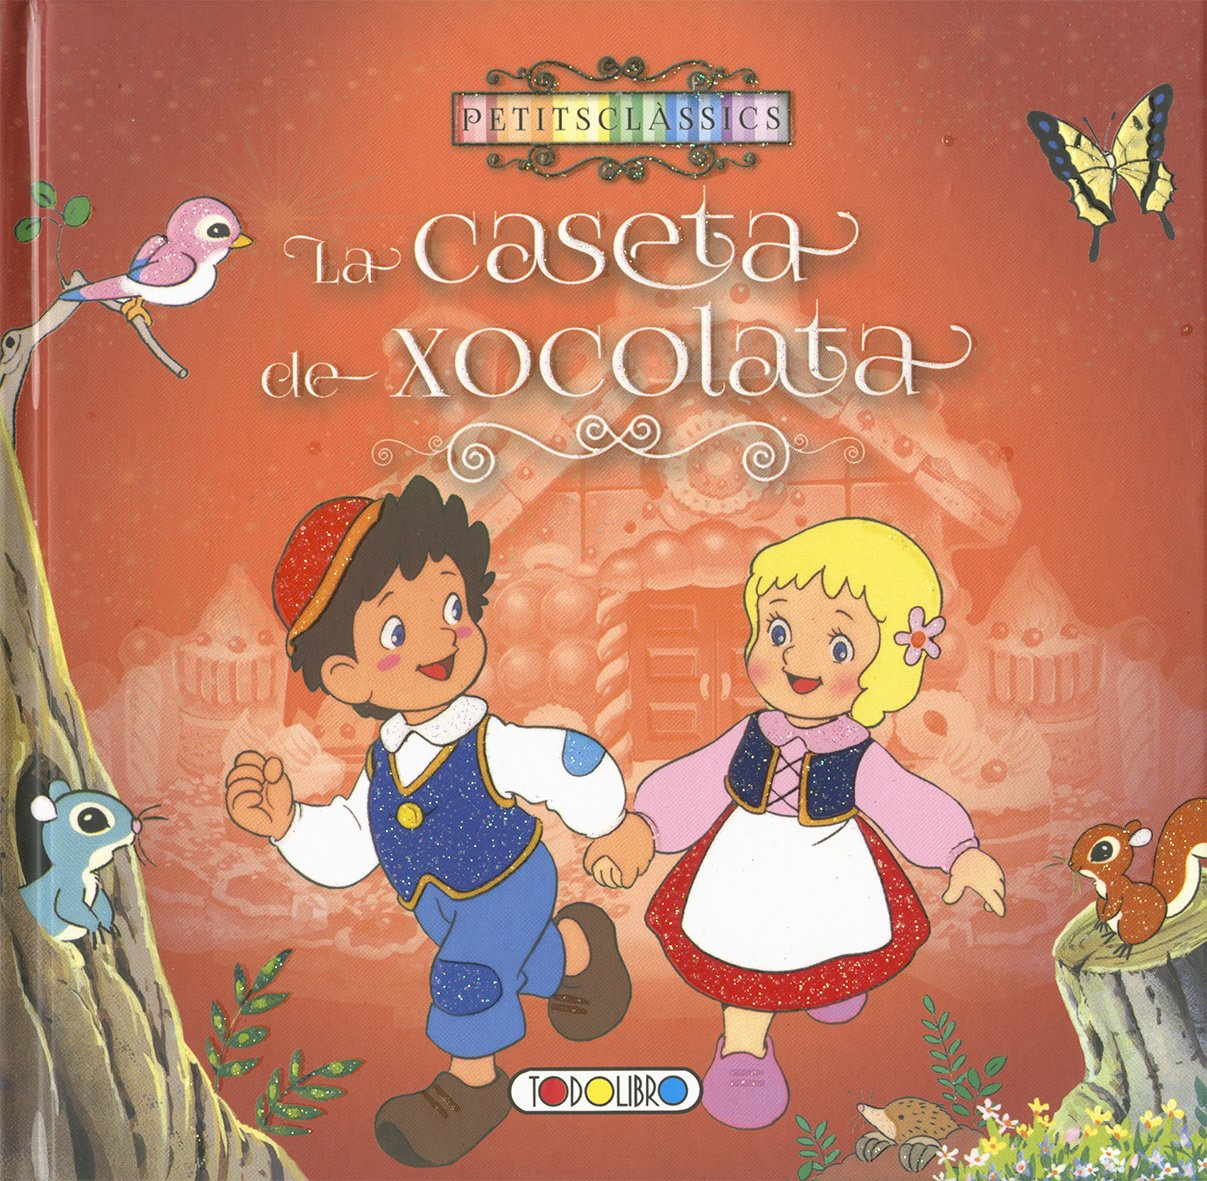 La caseta de xocolata (Catalan) Hardcover – March 31, 2017